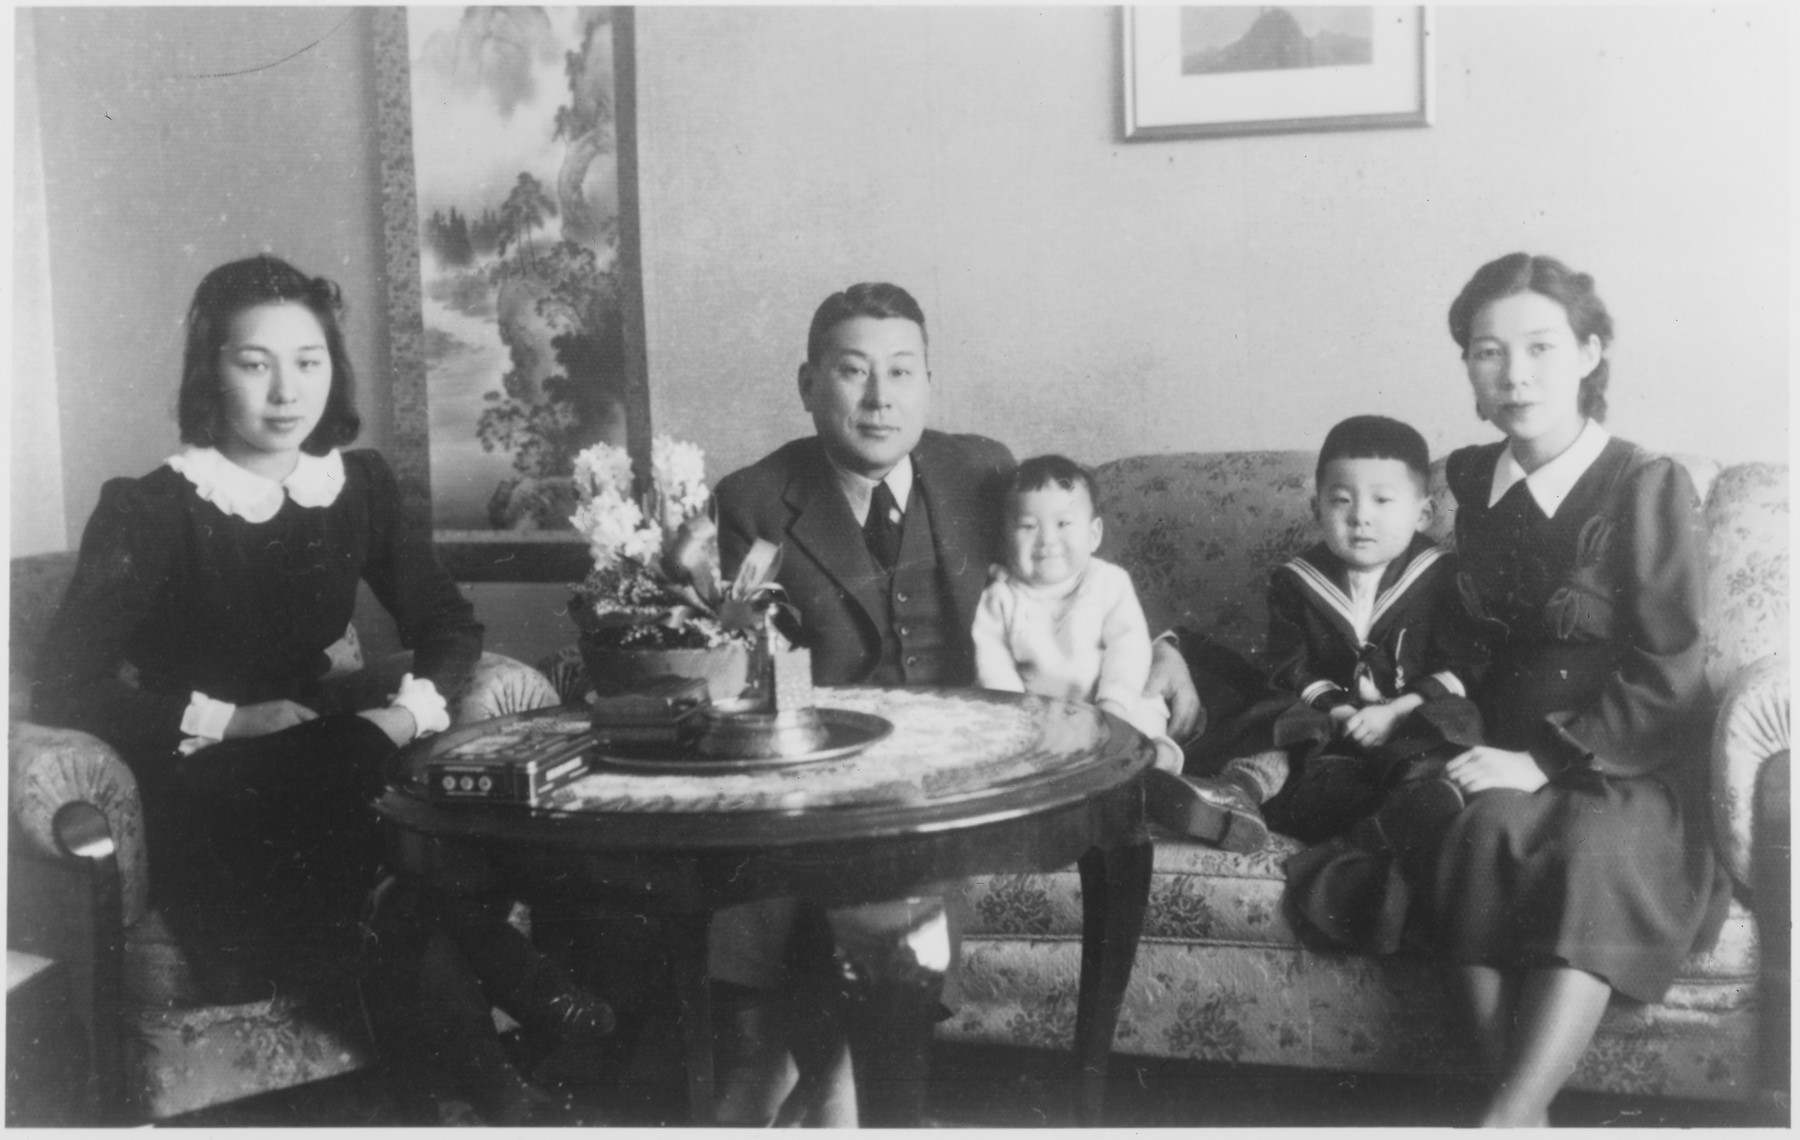 The Sugihara family sits in the living room of their residence in Kaunas shortly after their arrival.    Seated from left to right are: Setsuko Kikuchi (Yukiko's sister), Chiune Sugihara, Chiaki, Hiroki, and Yukiko Sugihara.